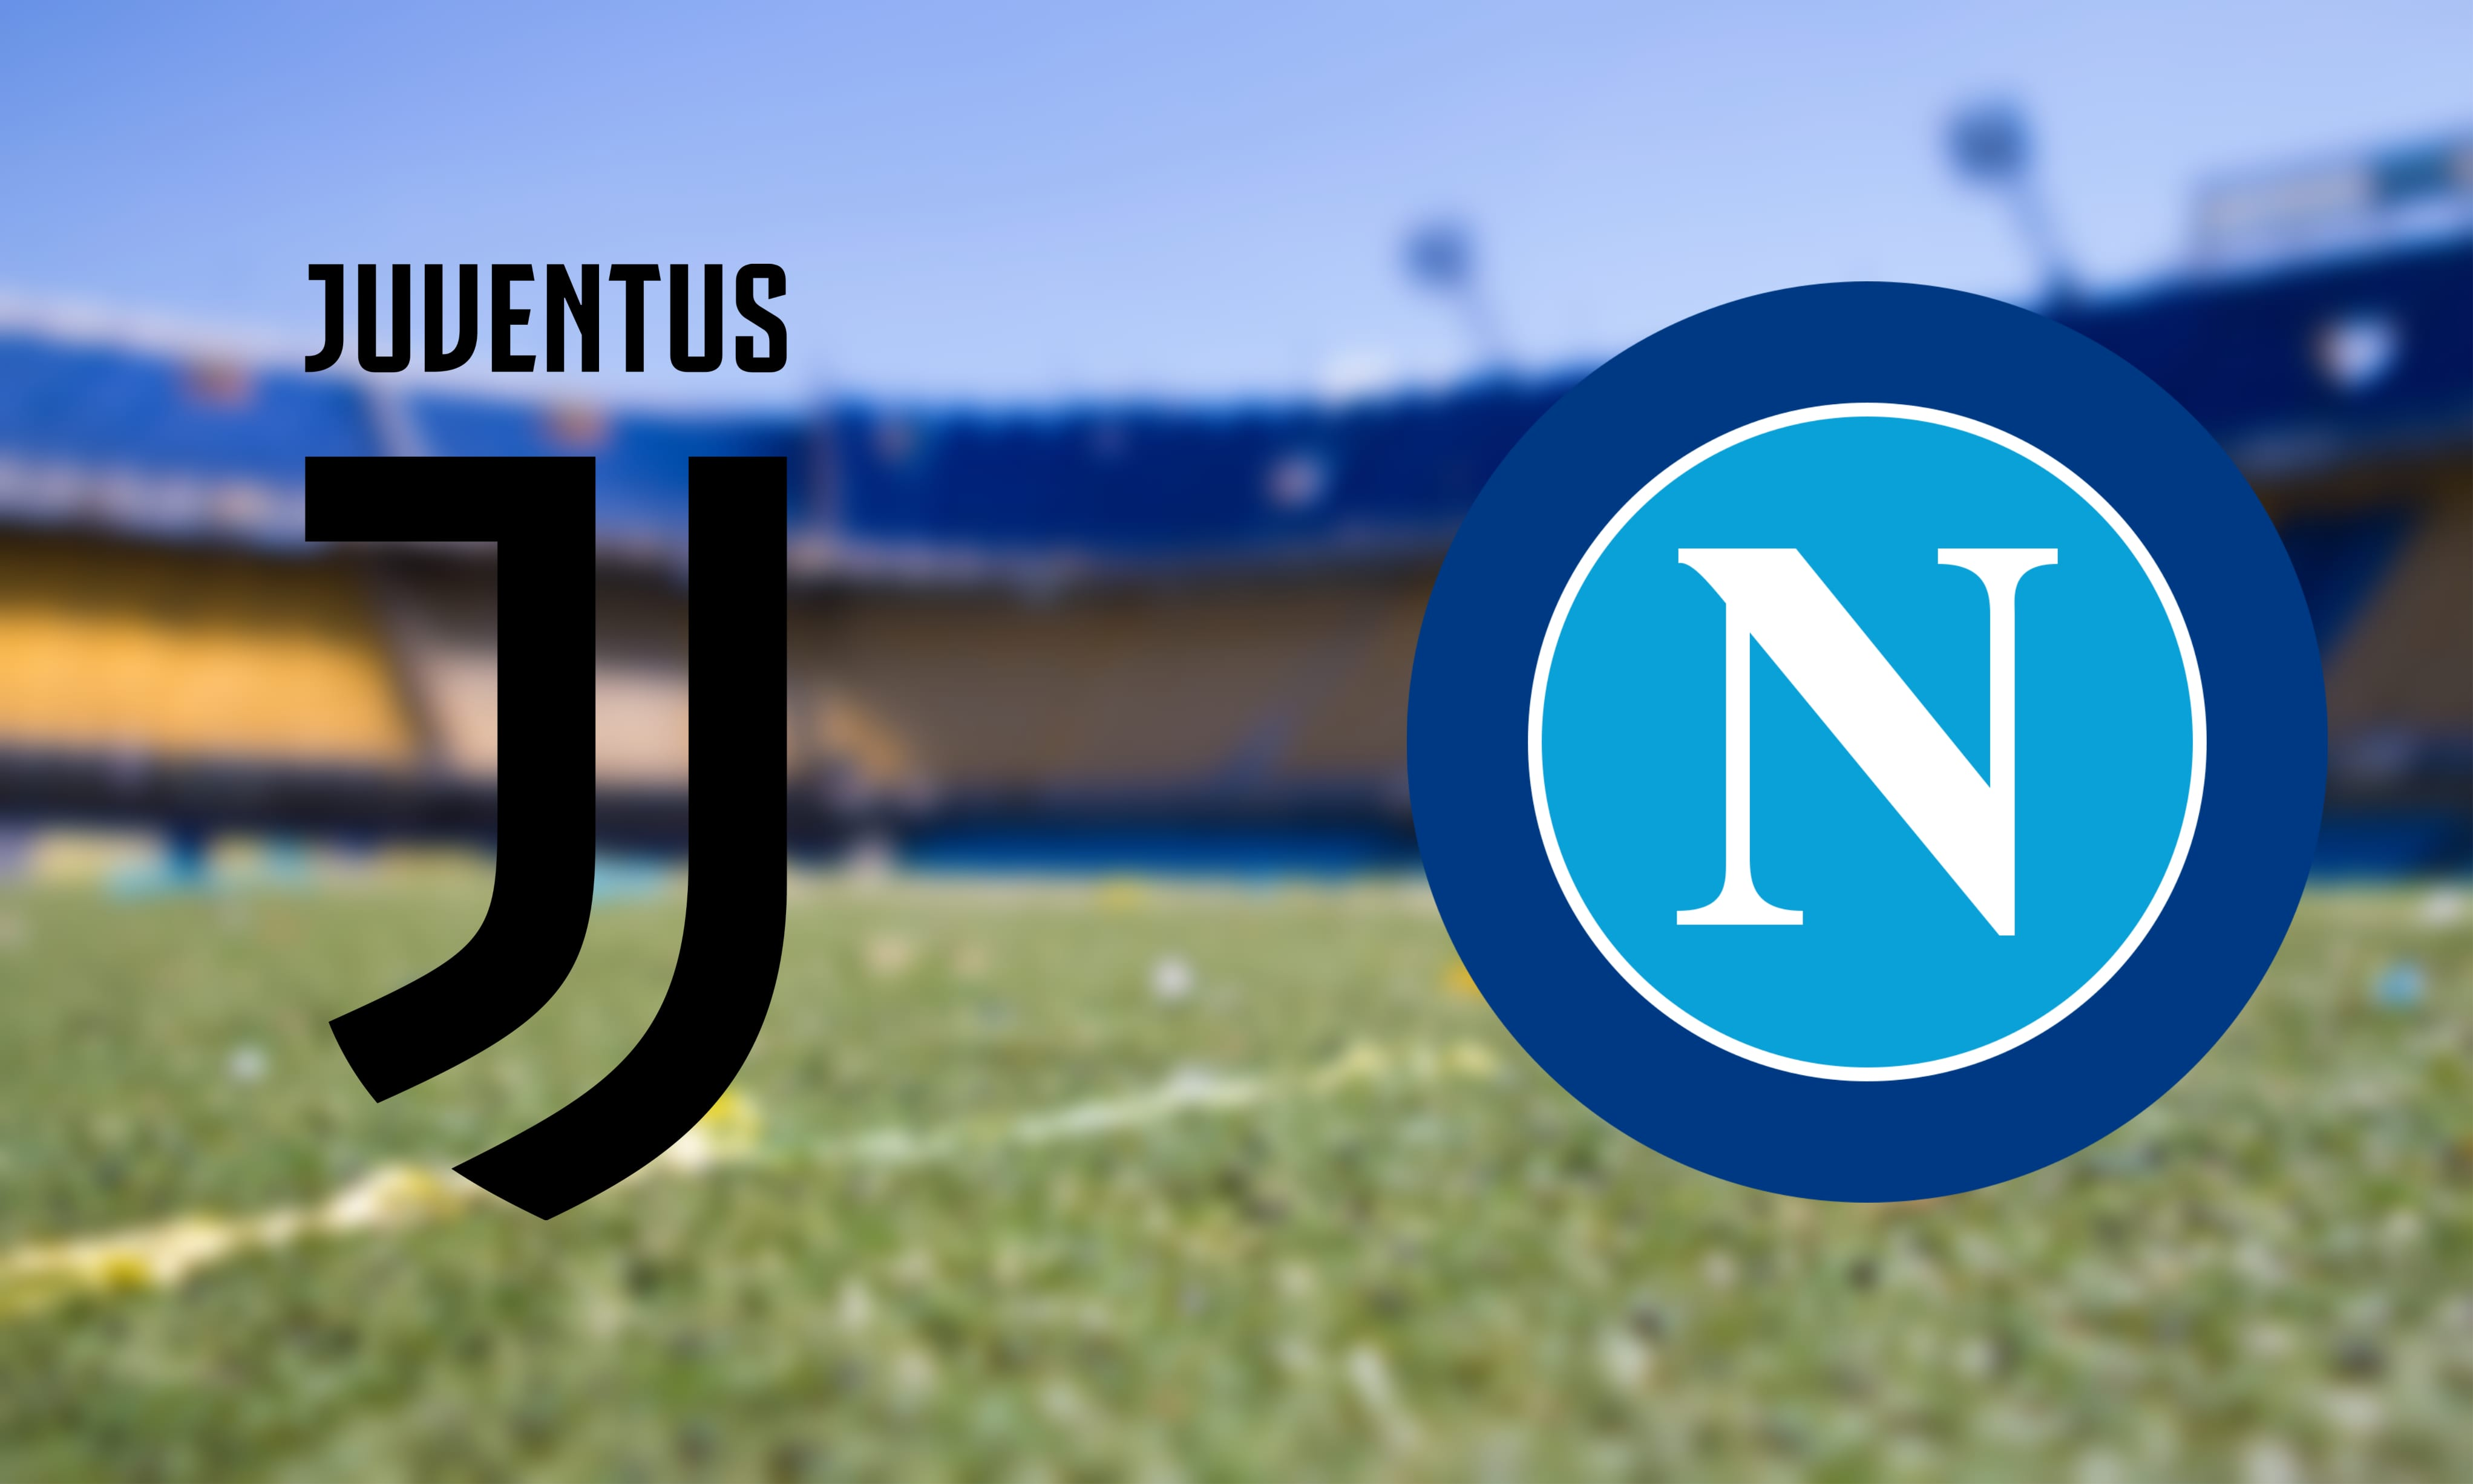 Juventus vs Napoli: Serie A Prediction and Preview on 31.08